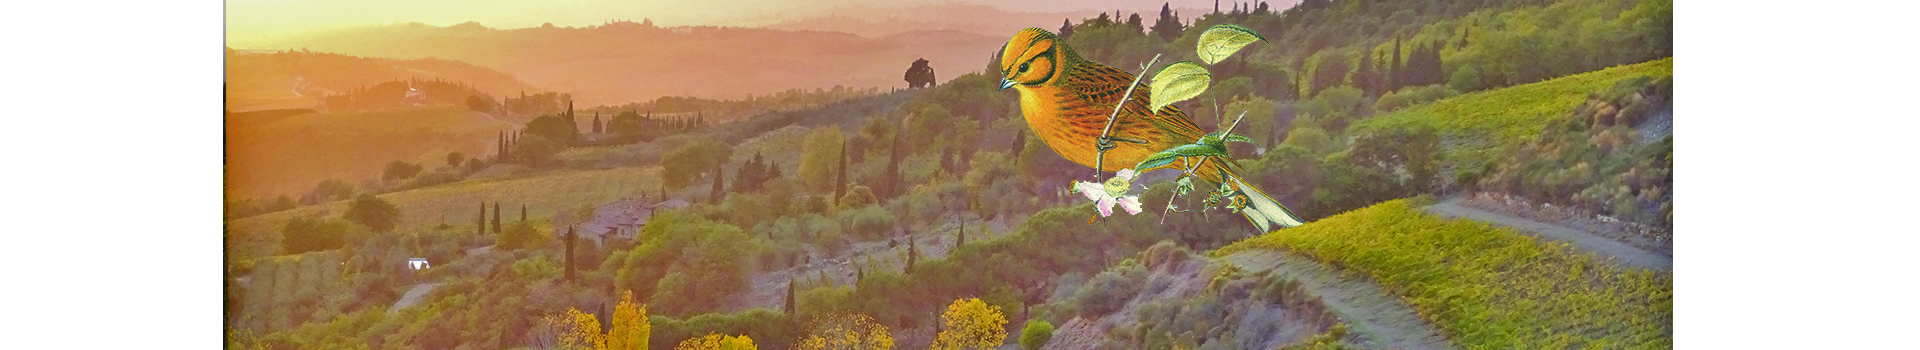 THE BIRDS OF CASTELLAREHERE IS THE PROTAGONIST OF THE 2017 VINTAGE